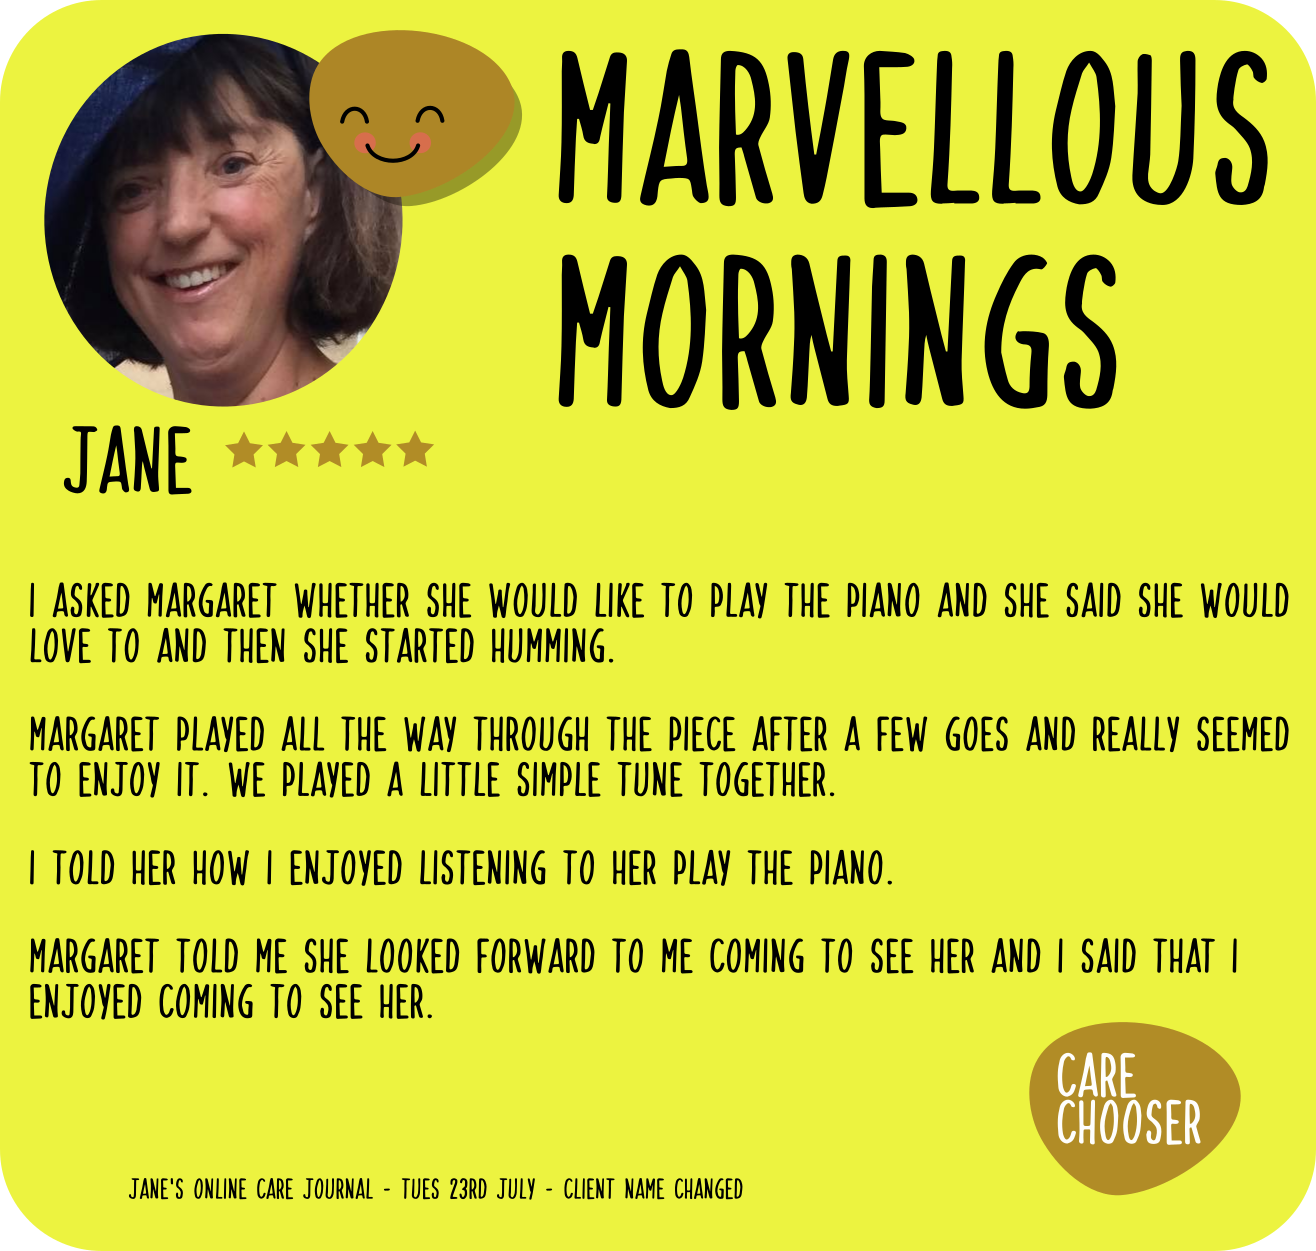 marvellous mornings - private carer Jane - CareChooser 2019.png